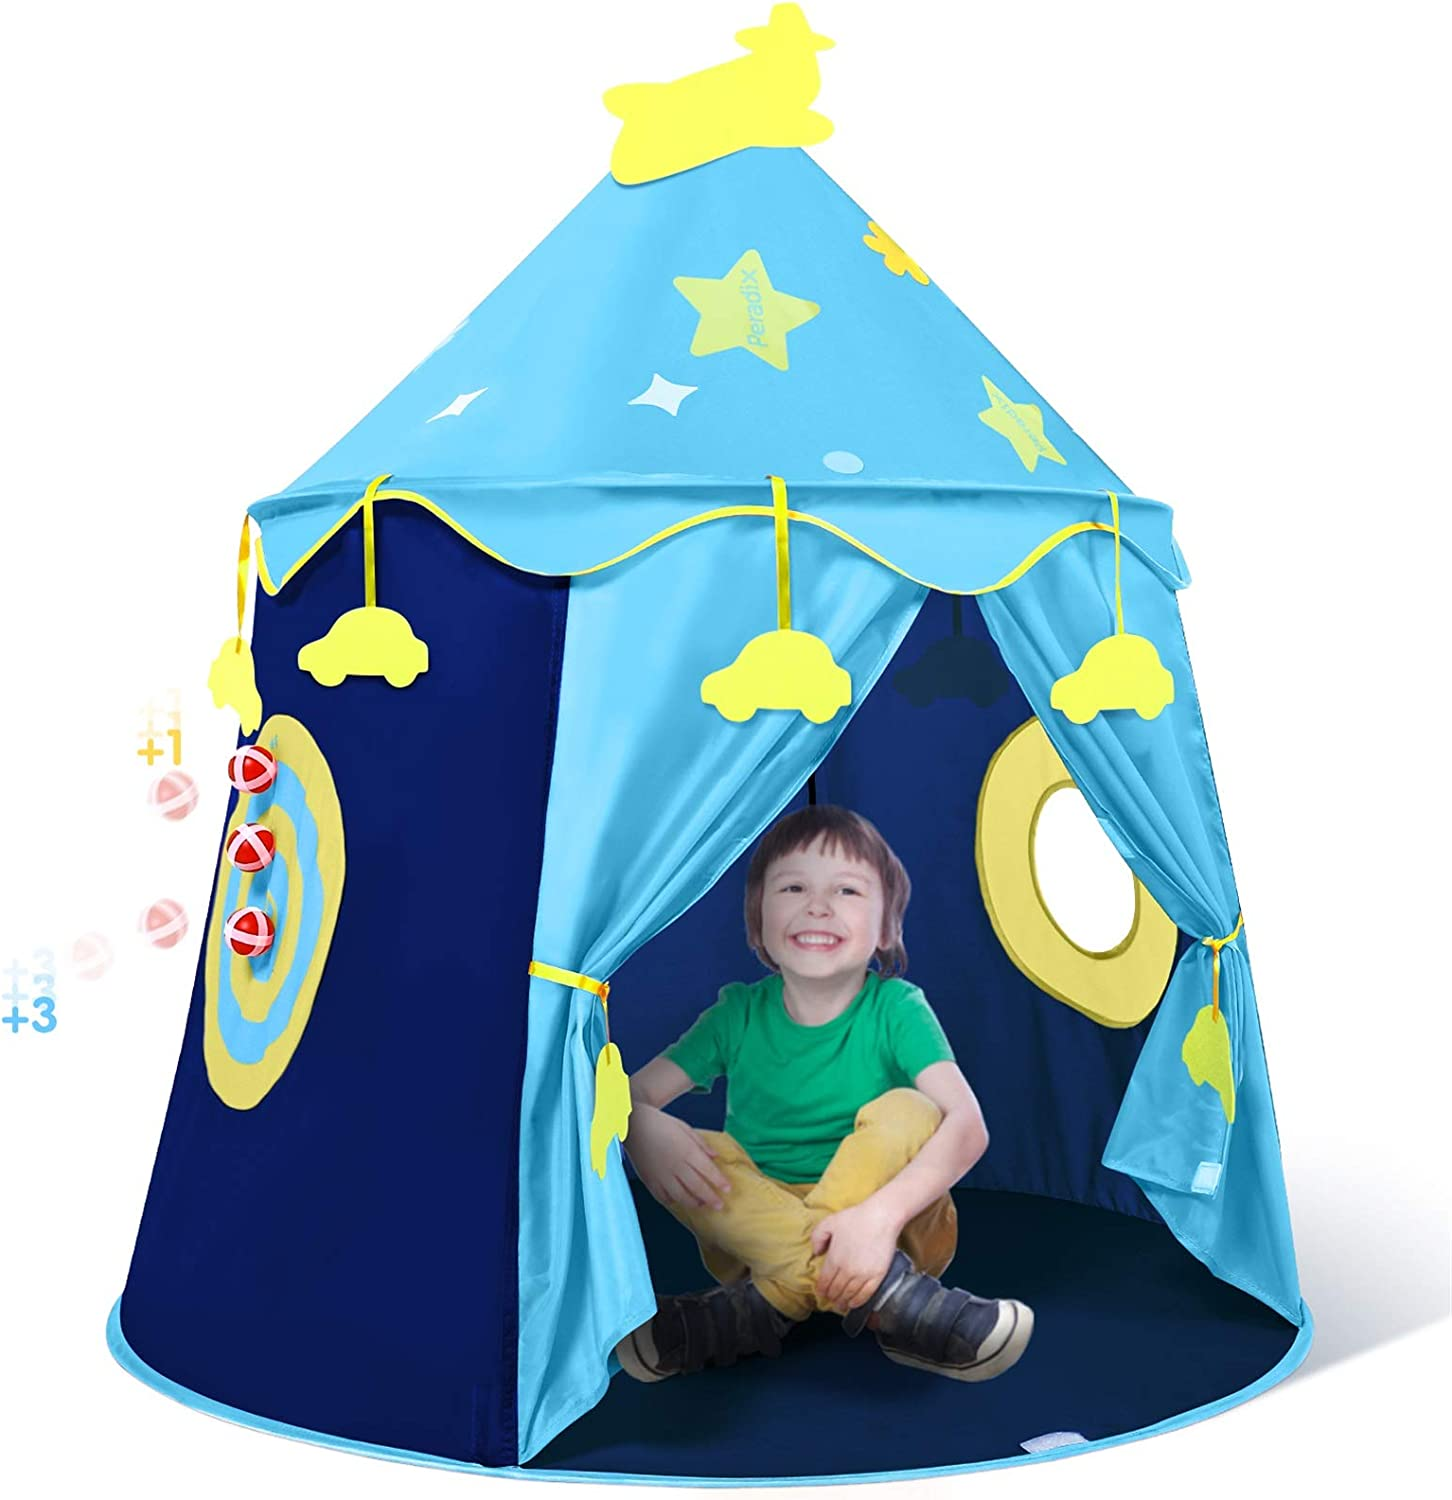 BOYS KNIGHT CASTLE PLAY TENT LIGHT WEIGHT AND EASY TO ASSEMBLE FUN BOY GIFT NEW